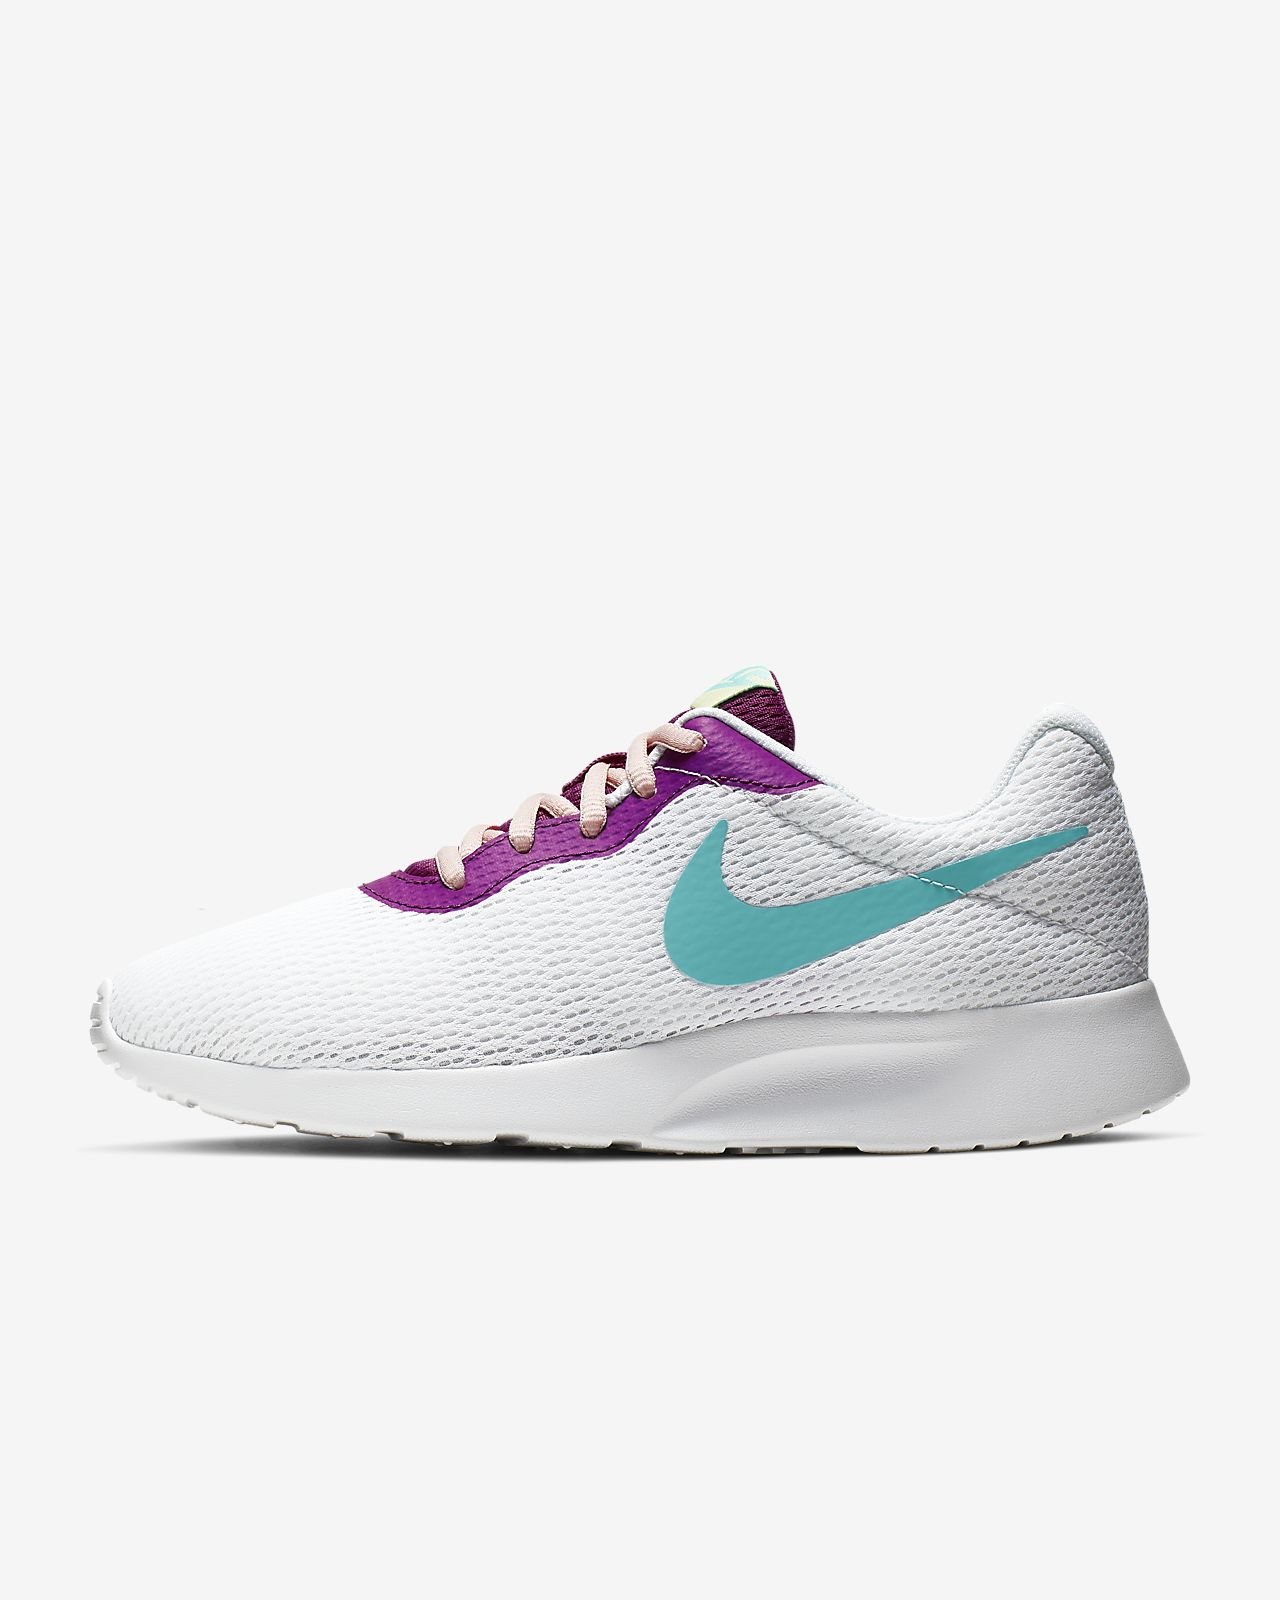 c58ba463d42 Low Resolution Nike Tanjun Women's Shoe Nike Tanjun Women's Shoe